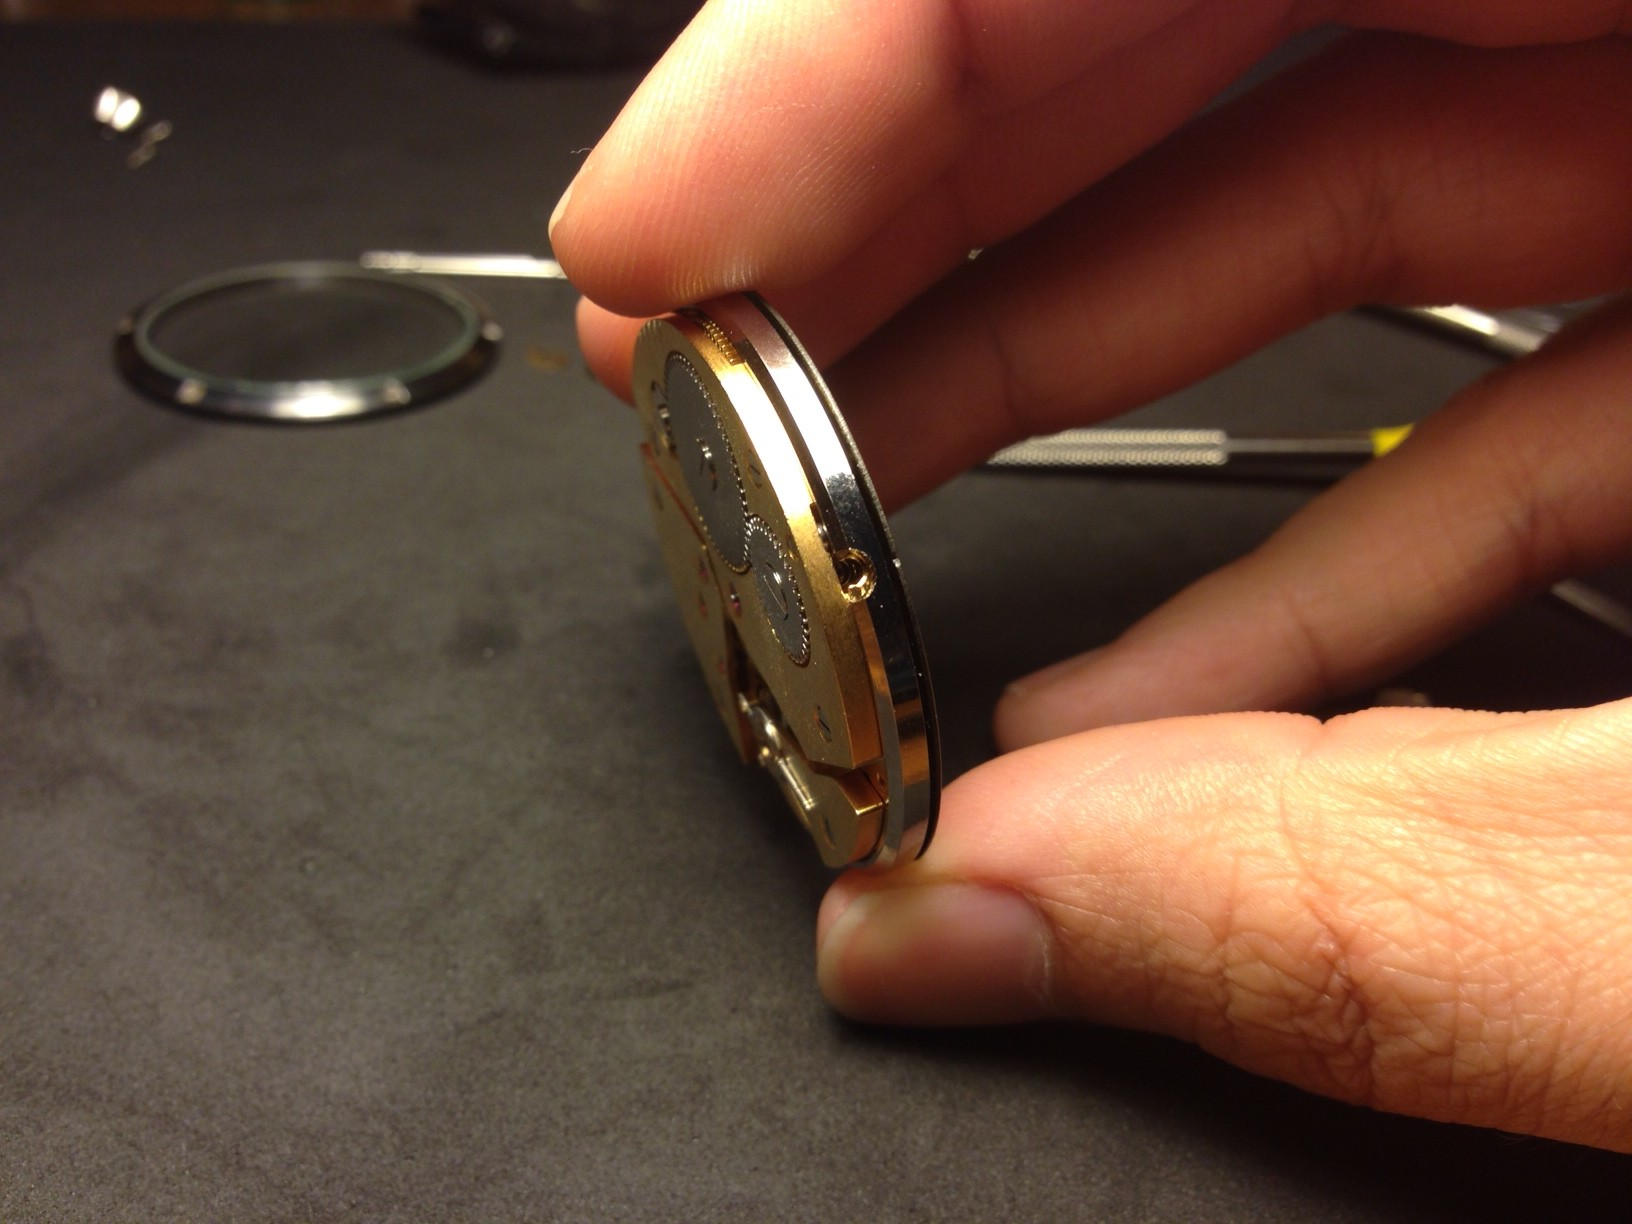 How to build your own mechanical watch - install the movement adaptor